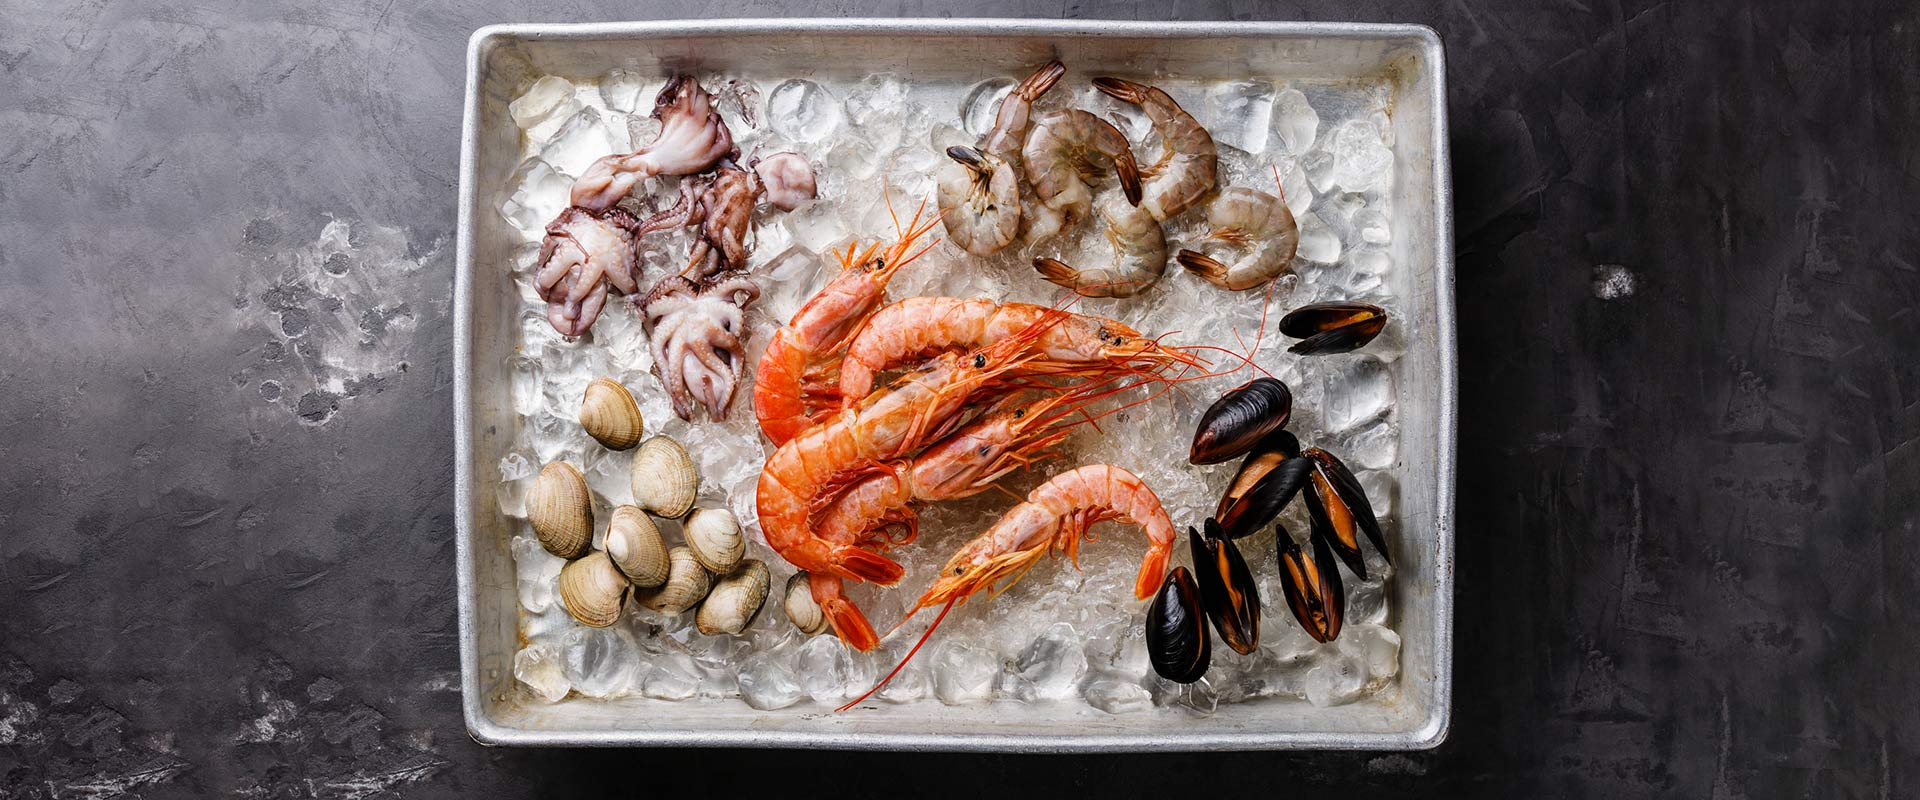 Quality seafoodwithout compromise